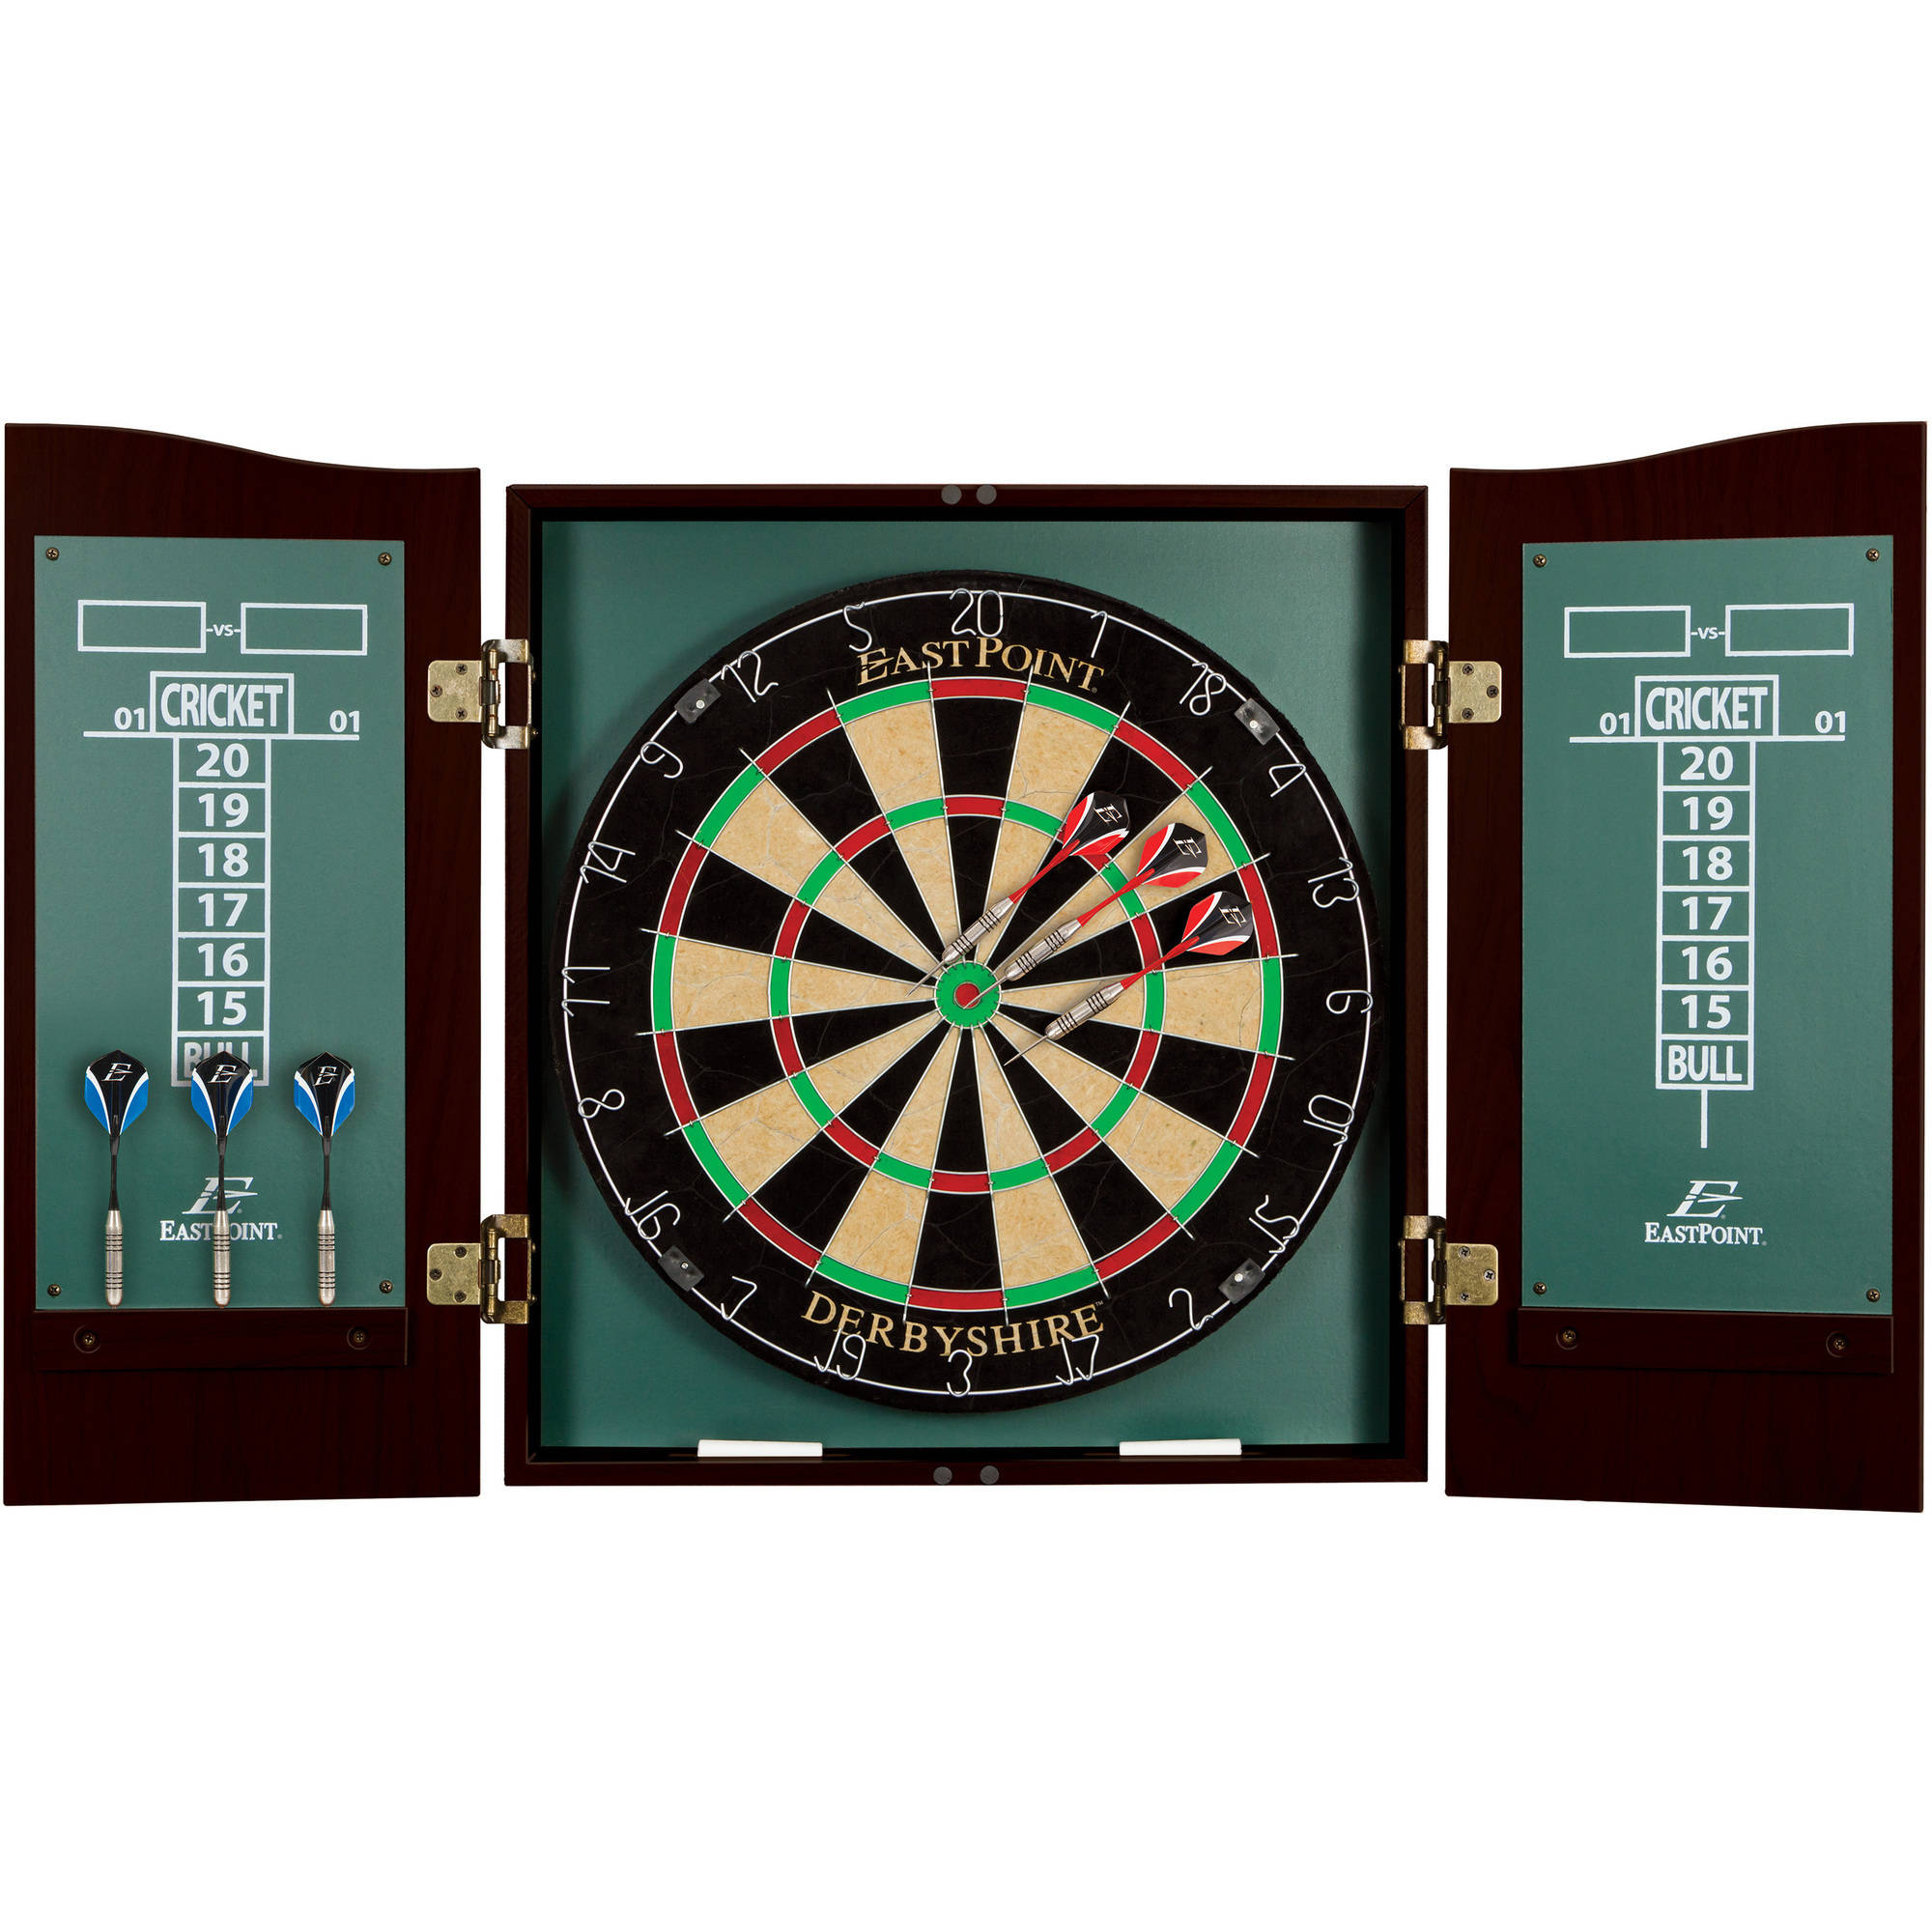 EastPoint Sports Derbyshire Dartboard U0026 Cabinet Set